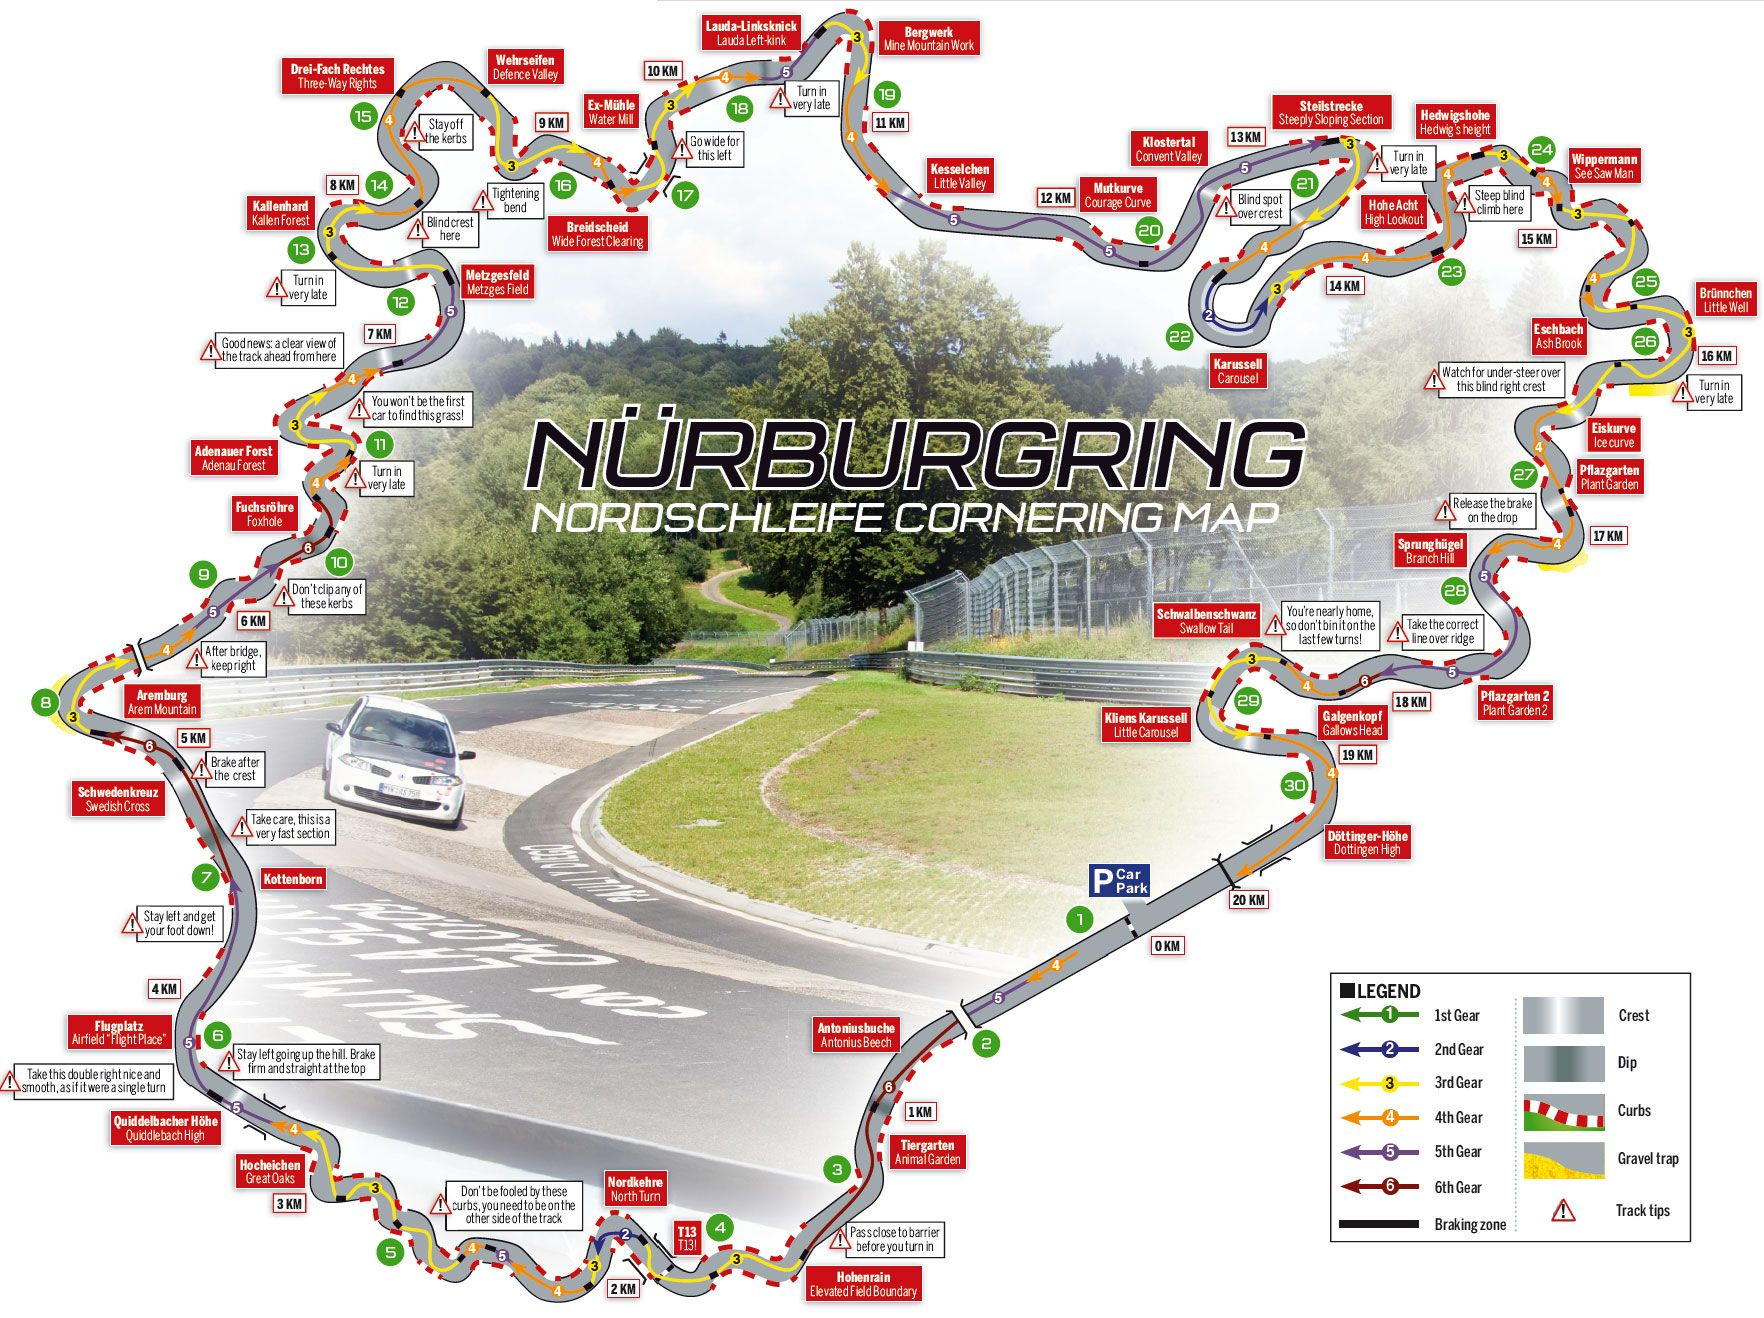 Nordschleife map with corner names and racing line. Look